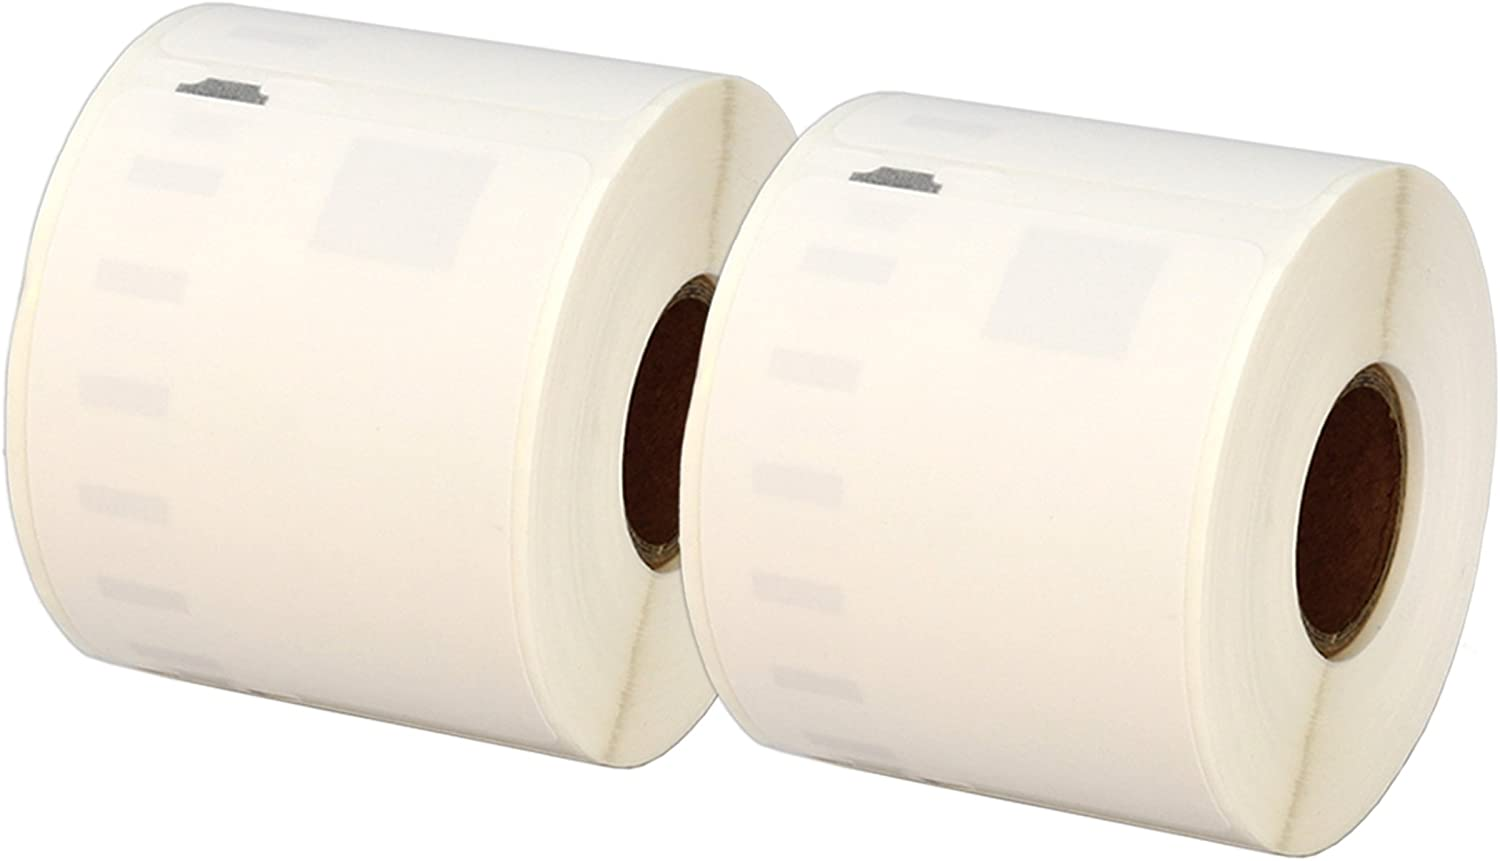 5 Compatible Rolls 99015 S0722440 54mm x 70mm Address Labels for Dymo LabelWriter 4XL 450 400 330 320 310 Twin Turbo Duo Seiko SLP 450 430 420 400 240 220 200 120 100 Pro Plus 320 Labels per Roll